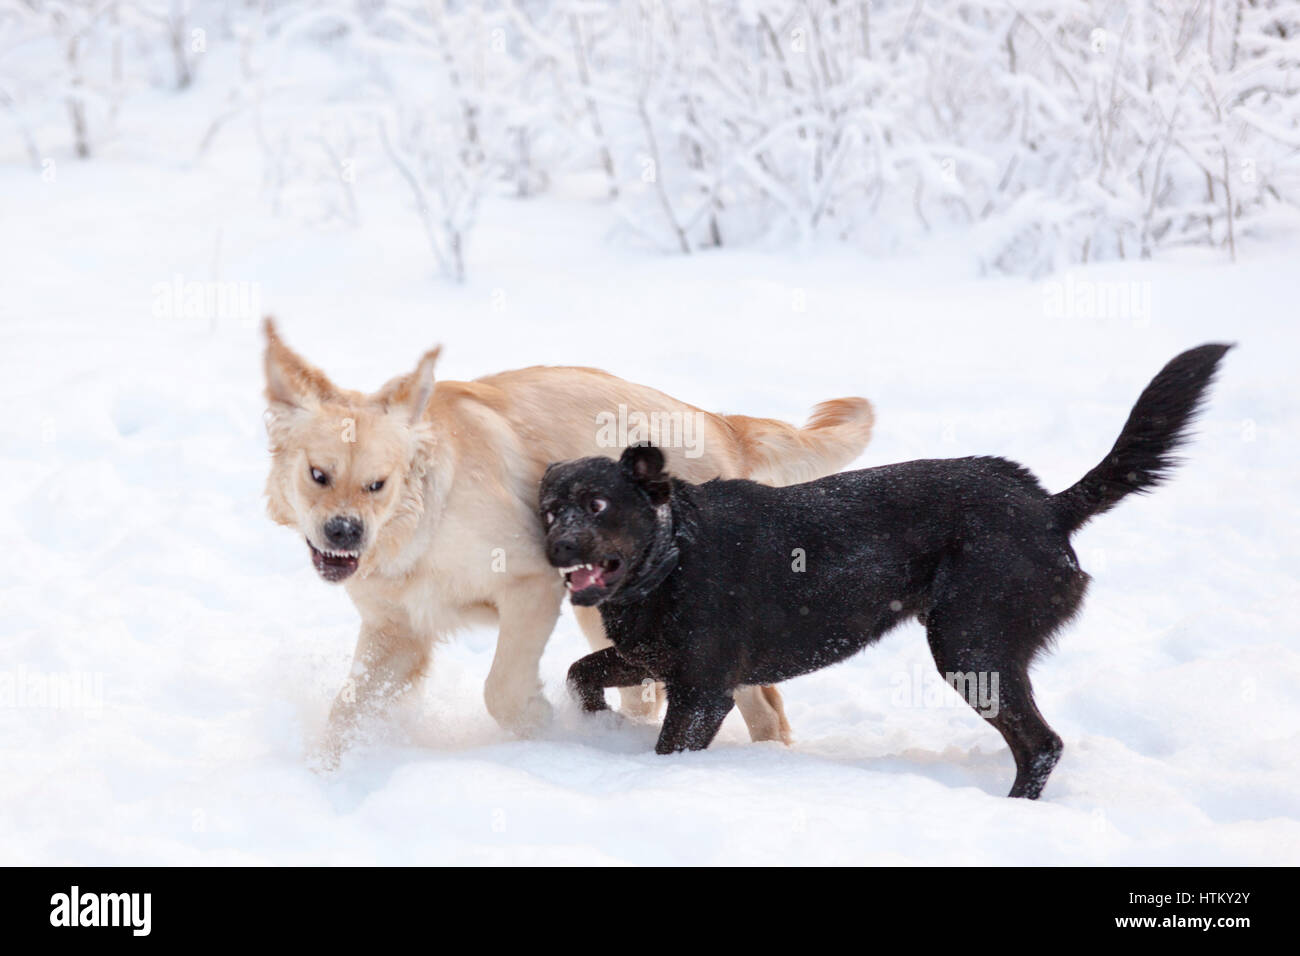 Two large dogs play fighting outdoors in snow  Model Release: No.  Property Release: Yes (black dog). - Stock Image